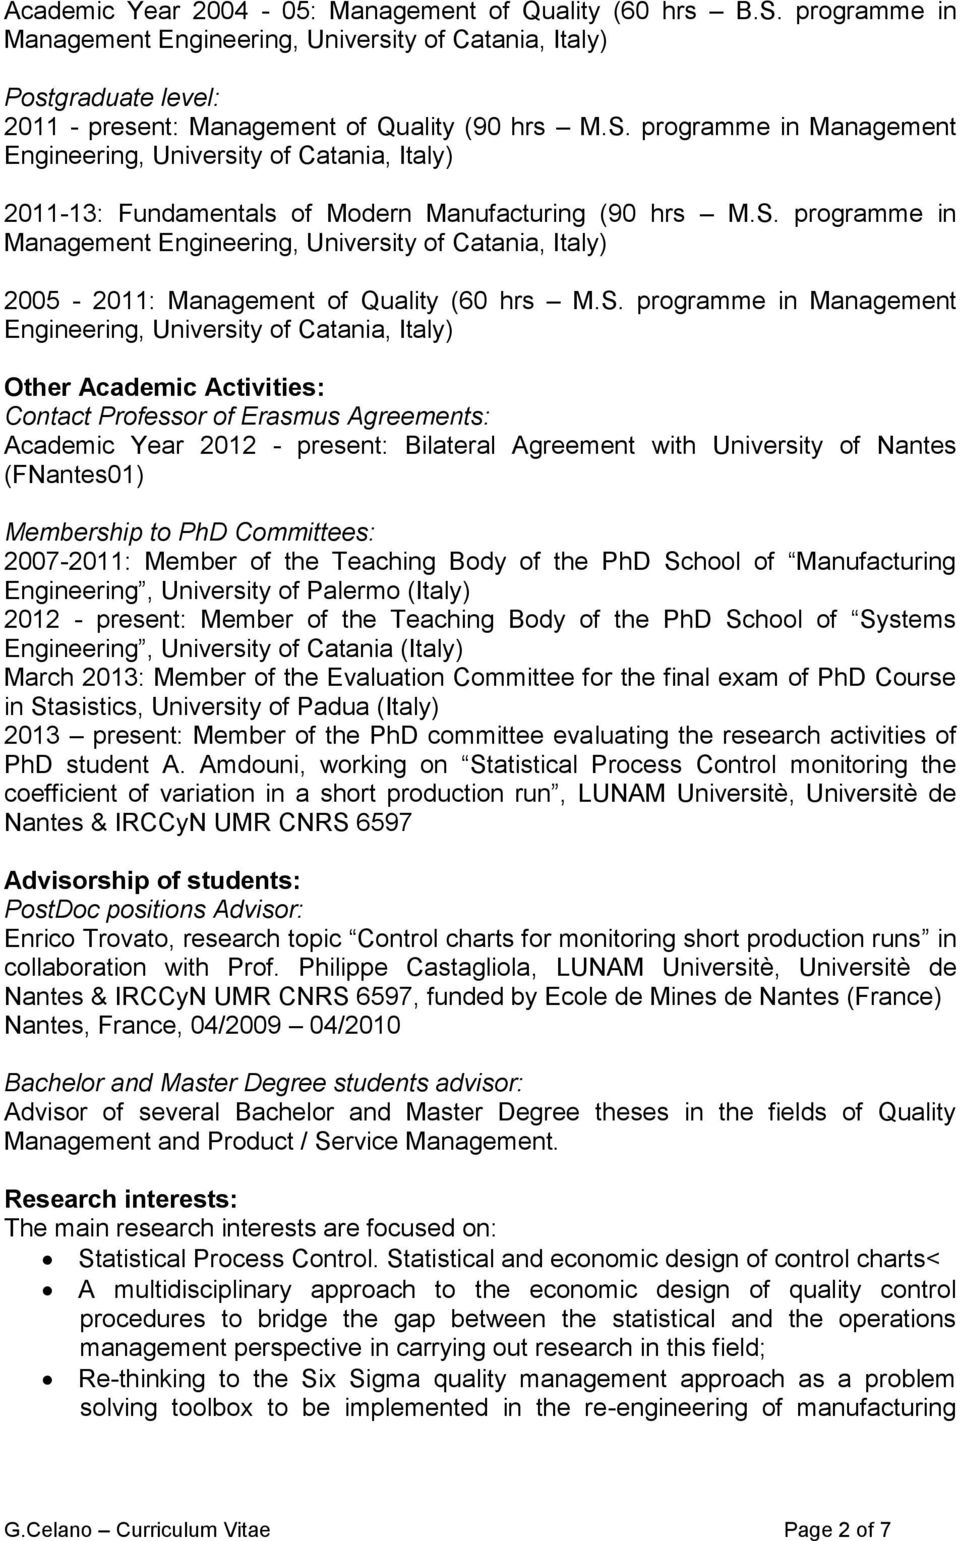 Activities: Contact Professor of Erasmus Agreements: Academic Year 2012 - present: Bilateral Agreement with University of Nantes (FNantes01) Membership to PhD Committees: 2007-2011: Member of the